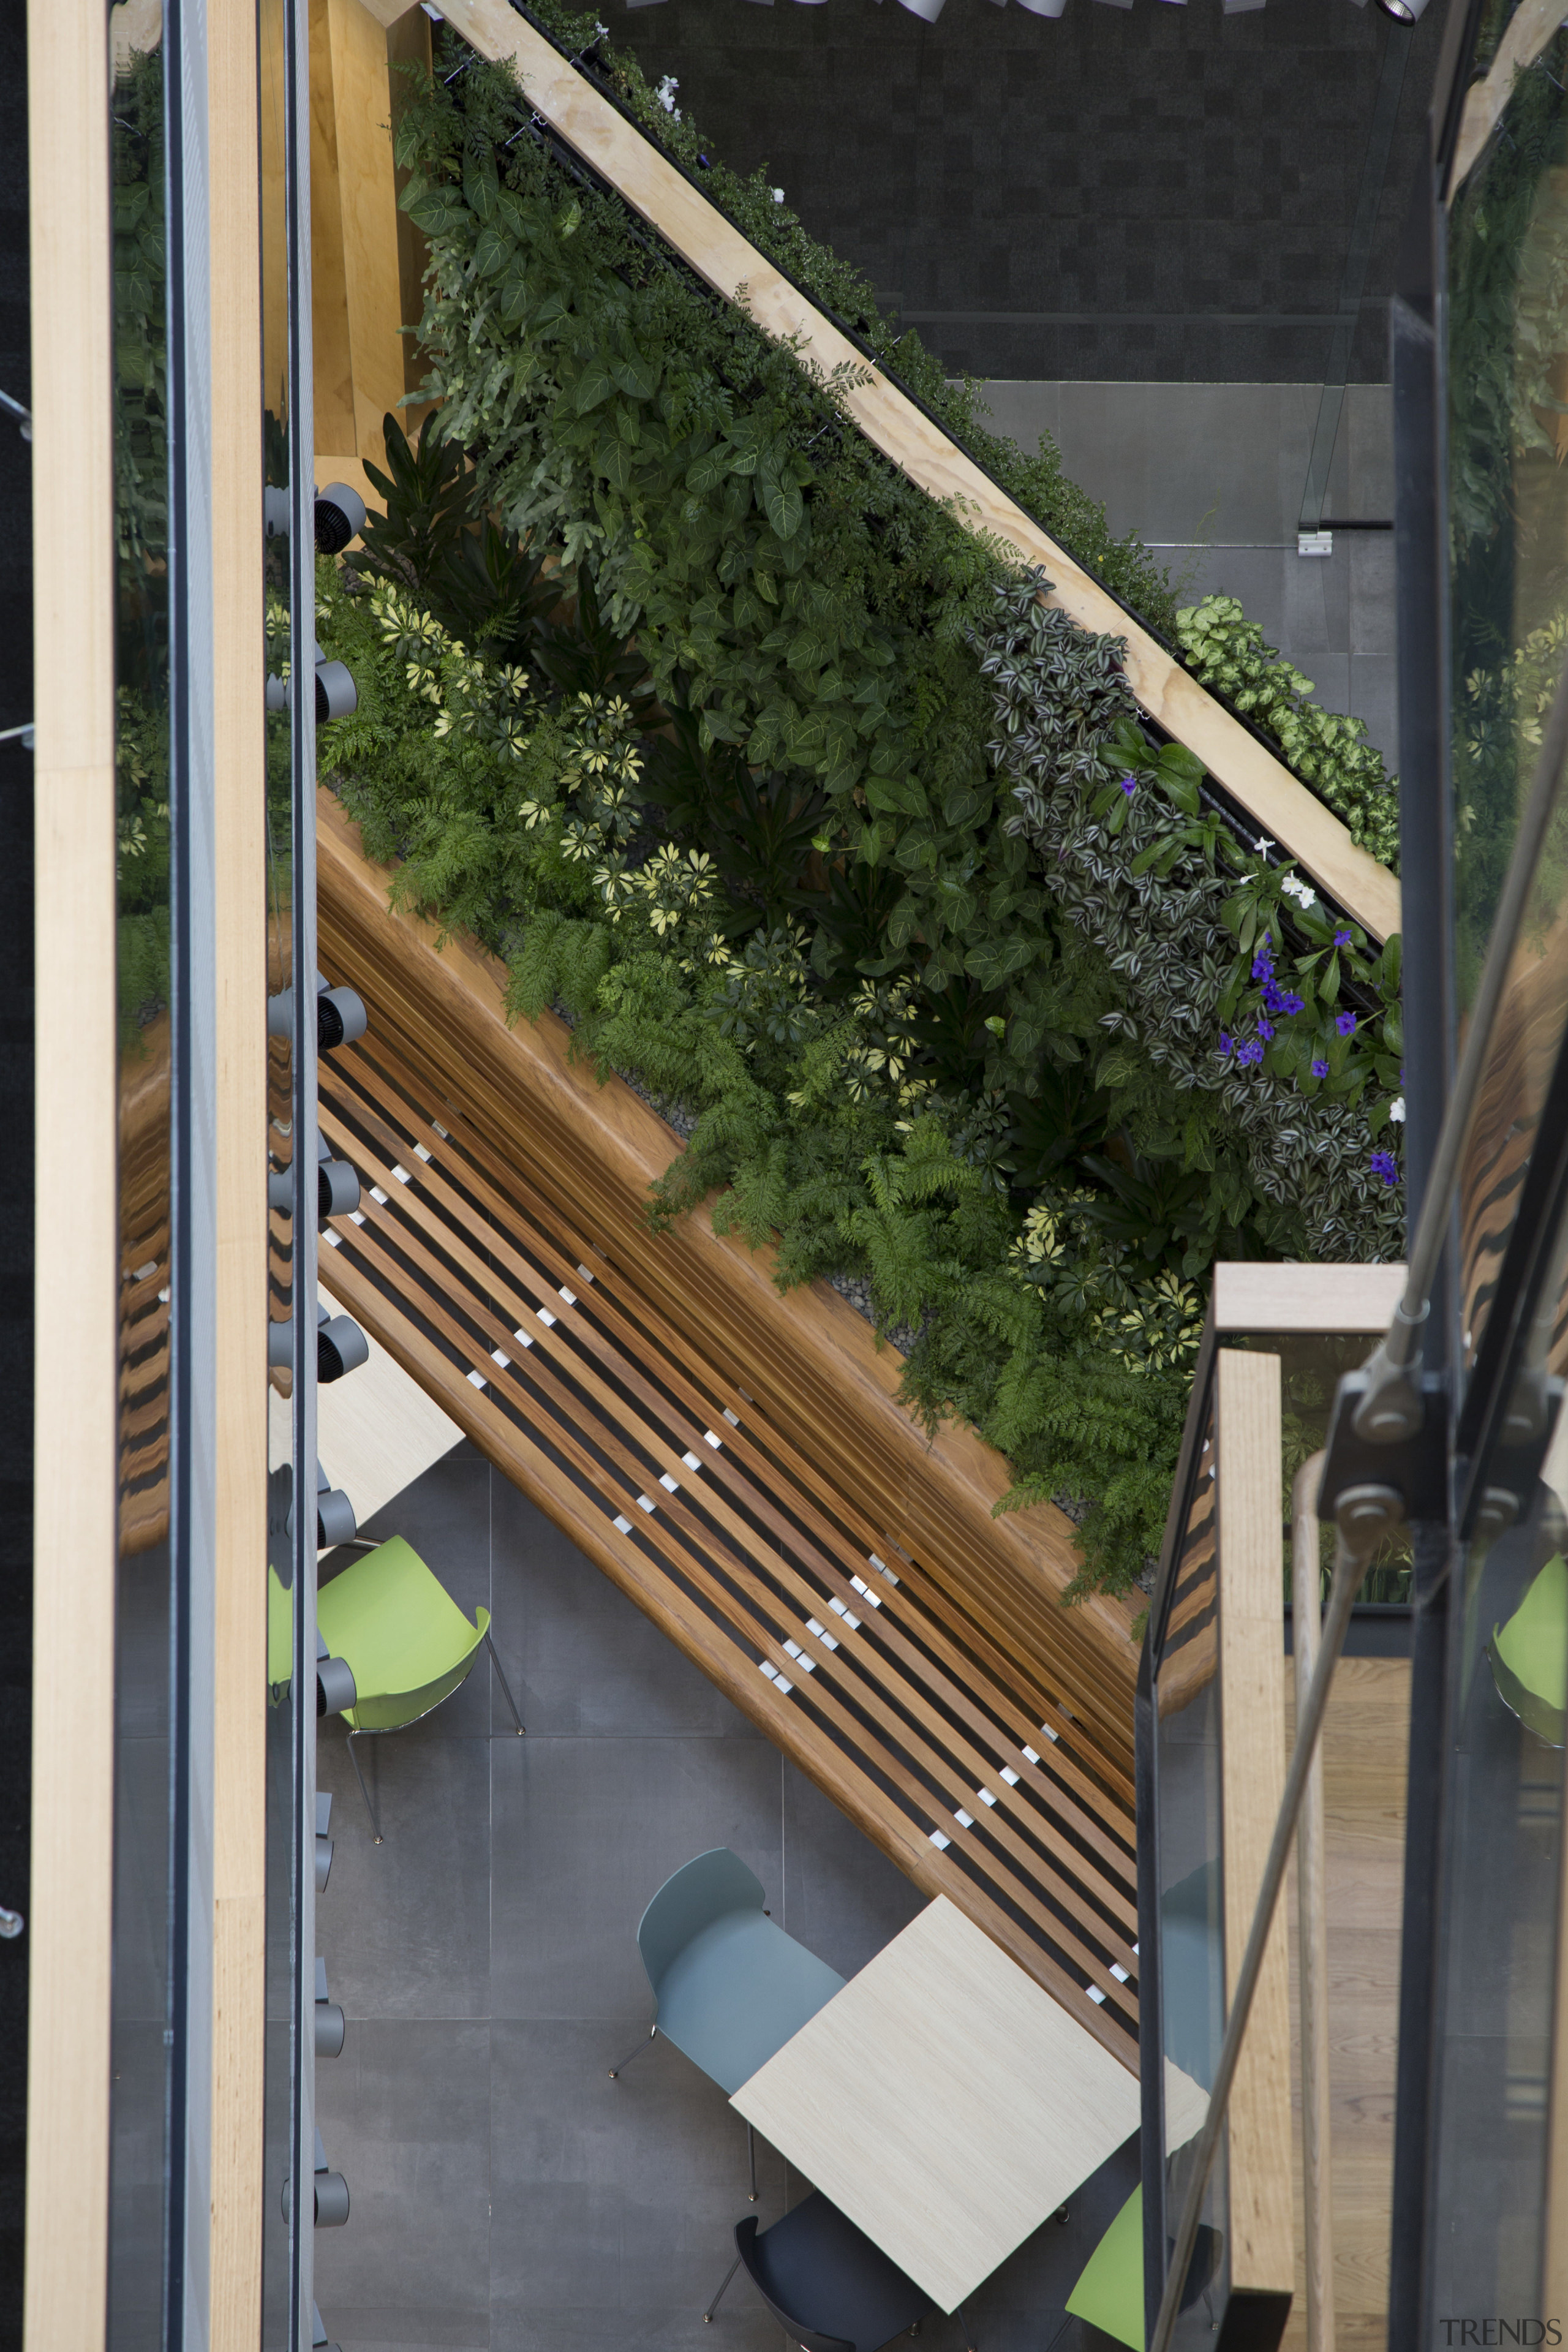 The Datacom atrium green wall as viewed from architecture, balcony, courtyard, handrail, house, outdoor structure, stairs, black